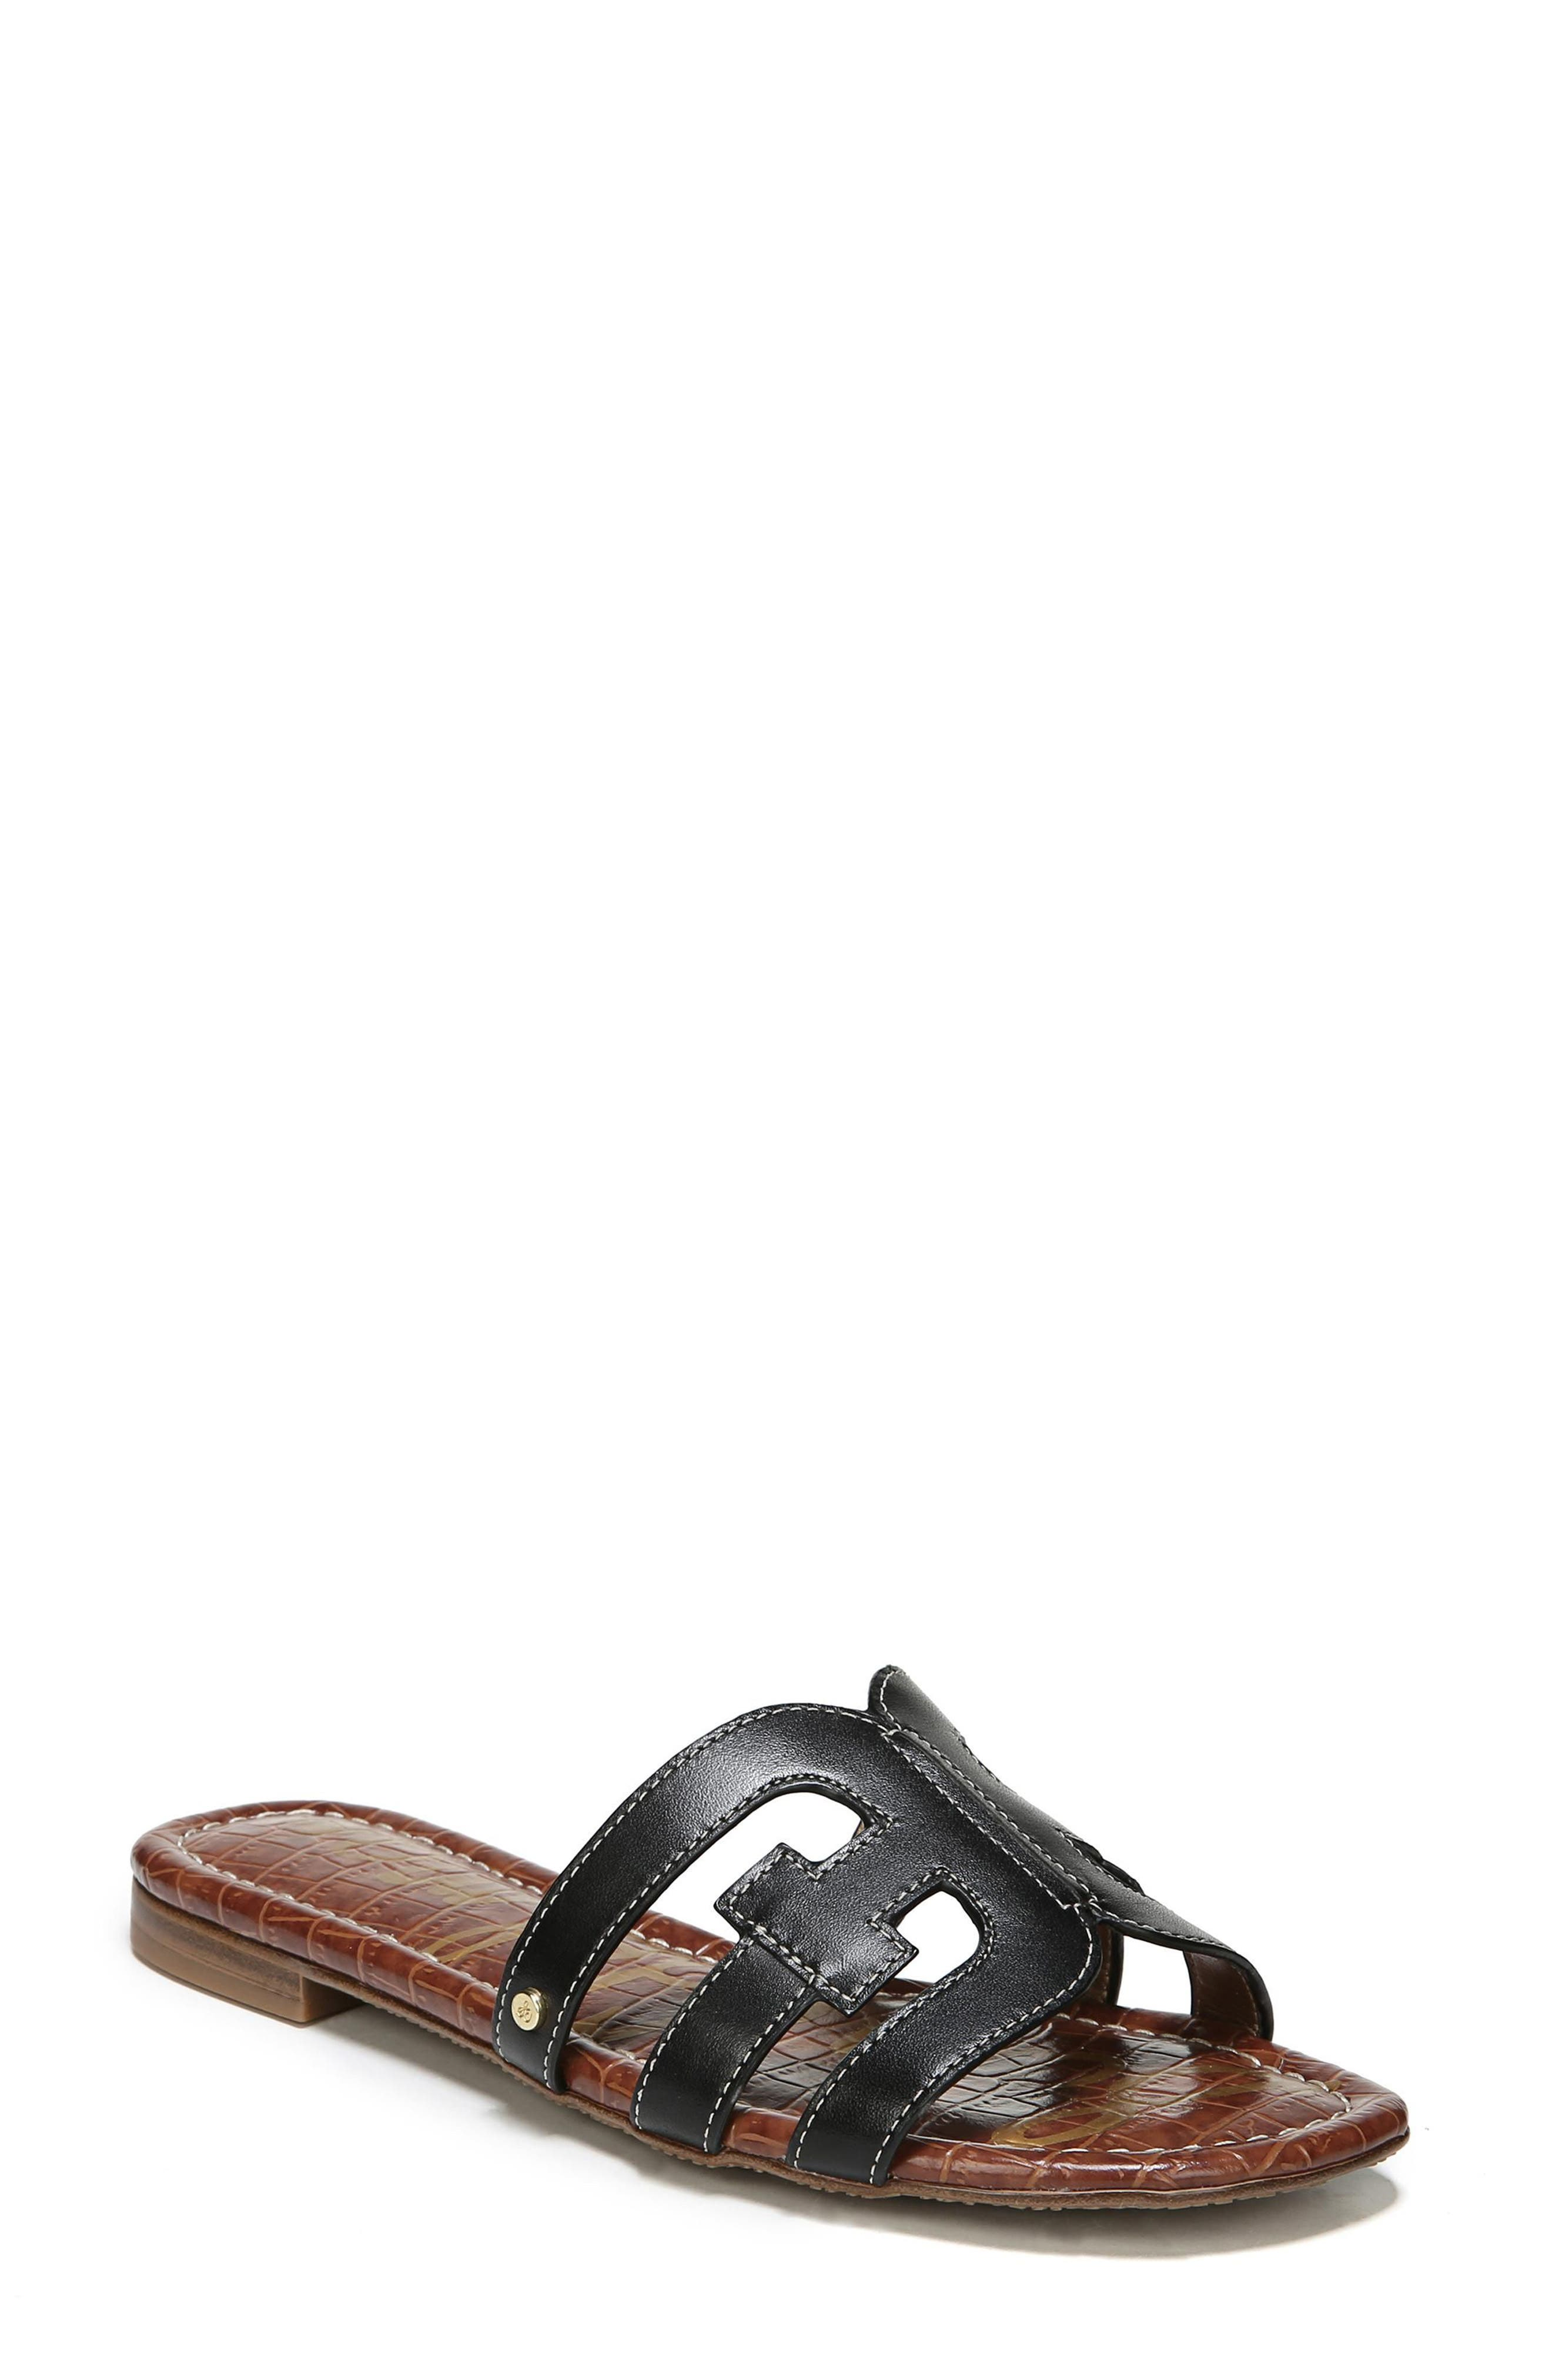 Bay Cutout Slide Sandal,                             Main thumbnail 1, color,                             BLACK LEATHER